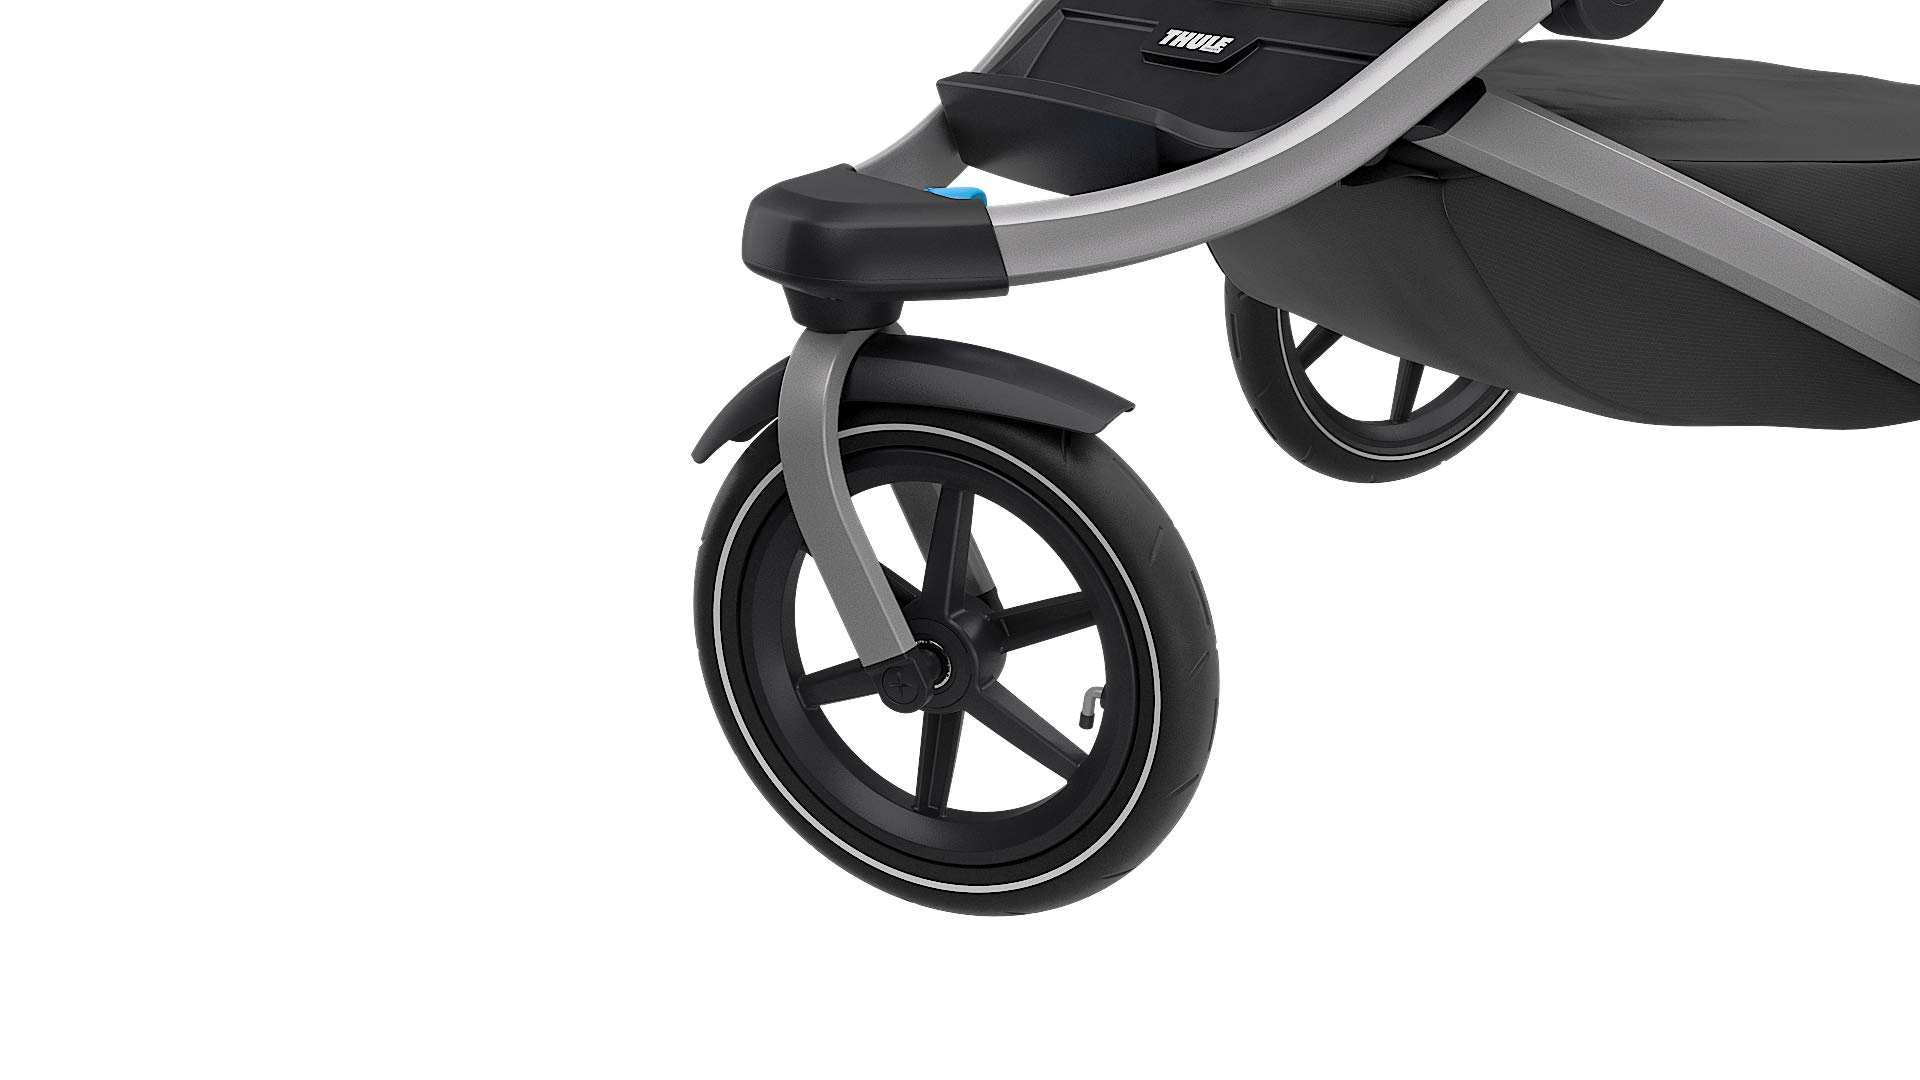 Thule Urban Glide 2.0 Jogging Stroller (Thule Blue w/Silver Frame) Thule One-handed, compact fold for easy storage and transportation Integrated twist hand brake provides speed control on hilly terrain Multi-position canopy with side-ventilation windows ensures your child is comfortable 7